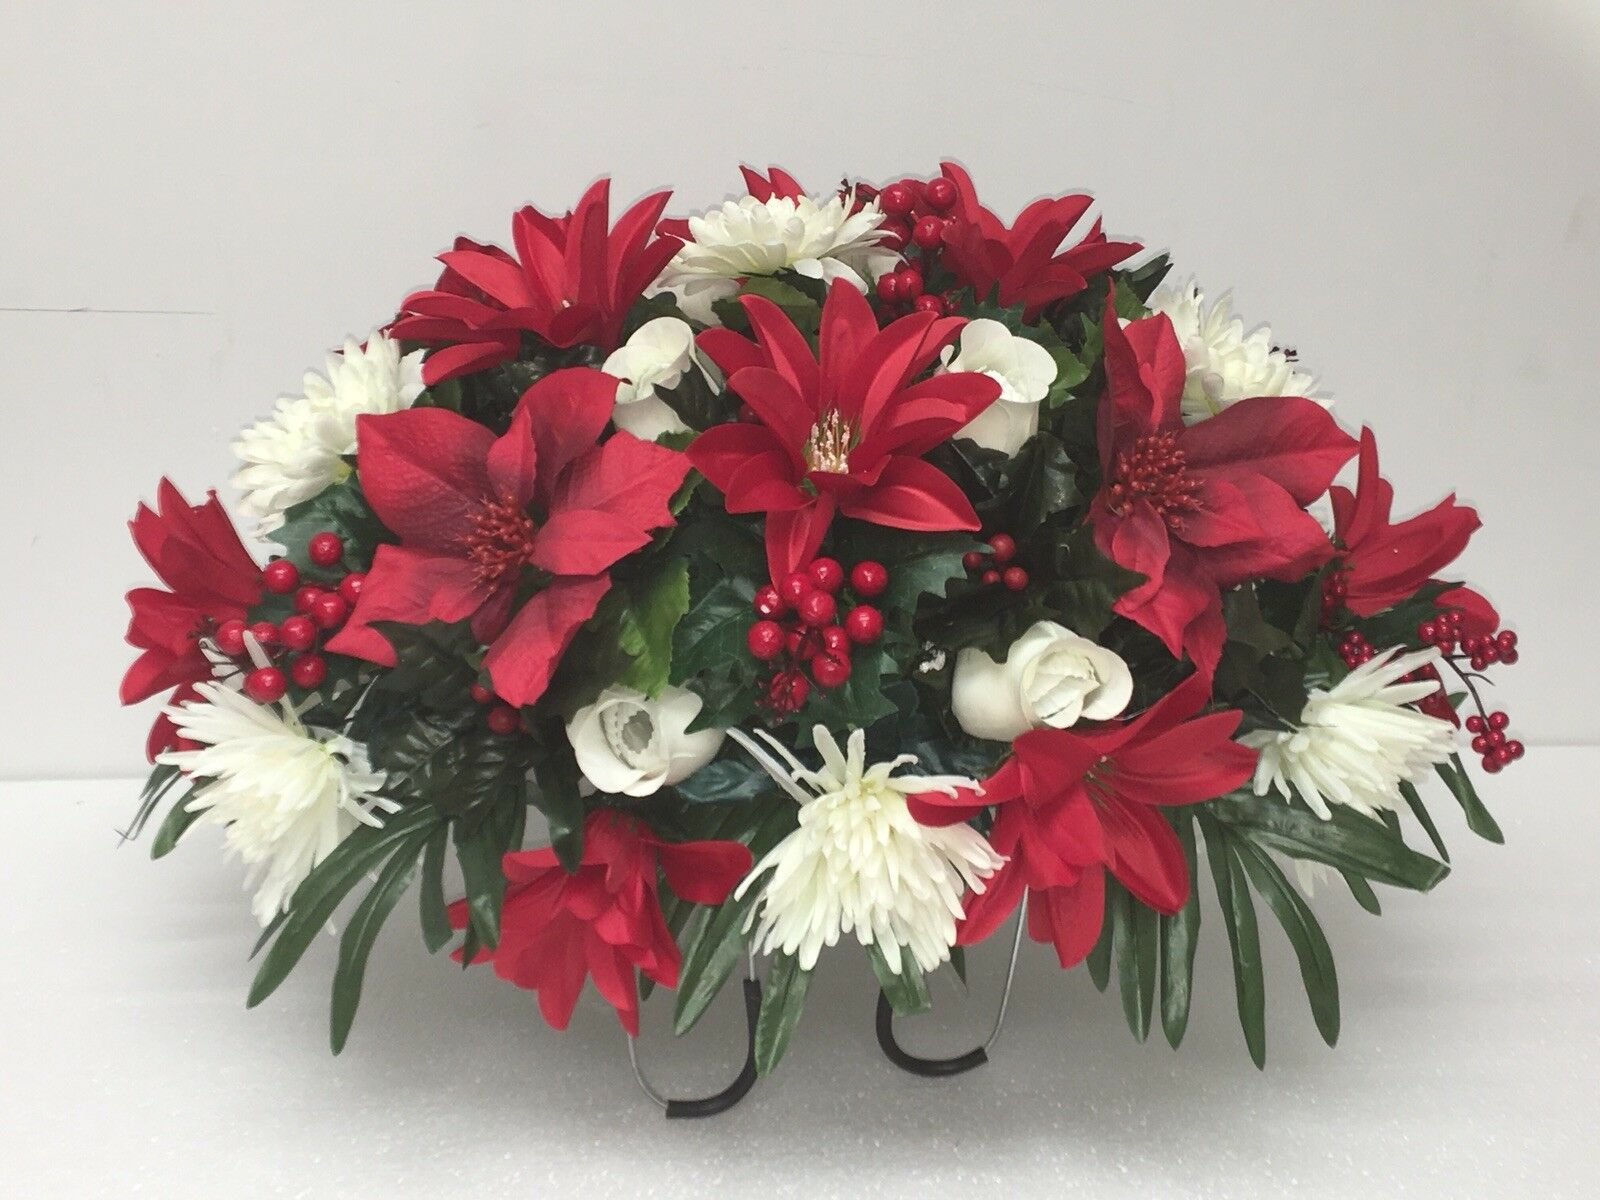 Christmas Cemetery Flowers Silk Headstone Flowers Holiday Cemetery